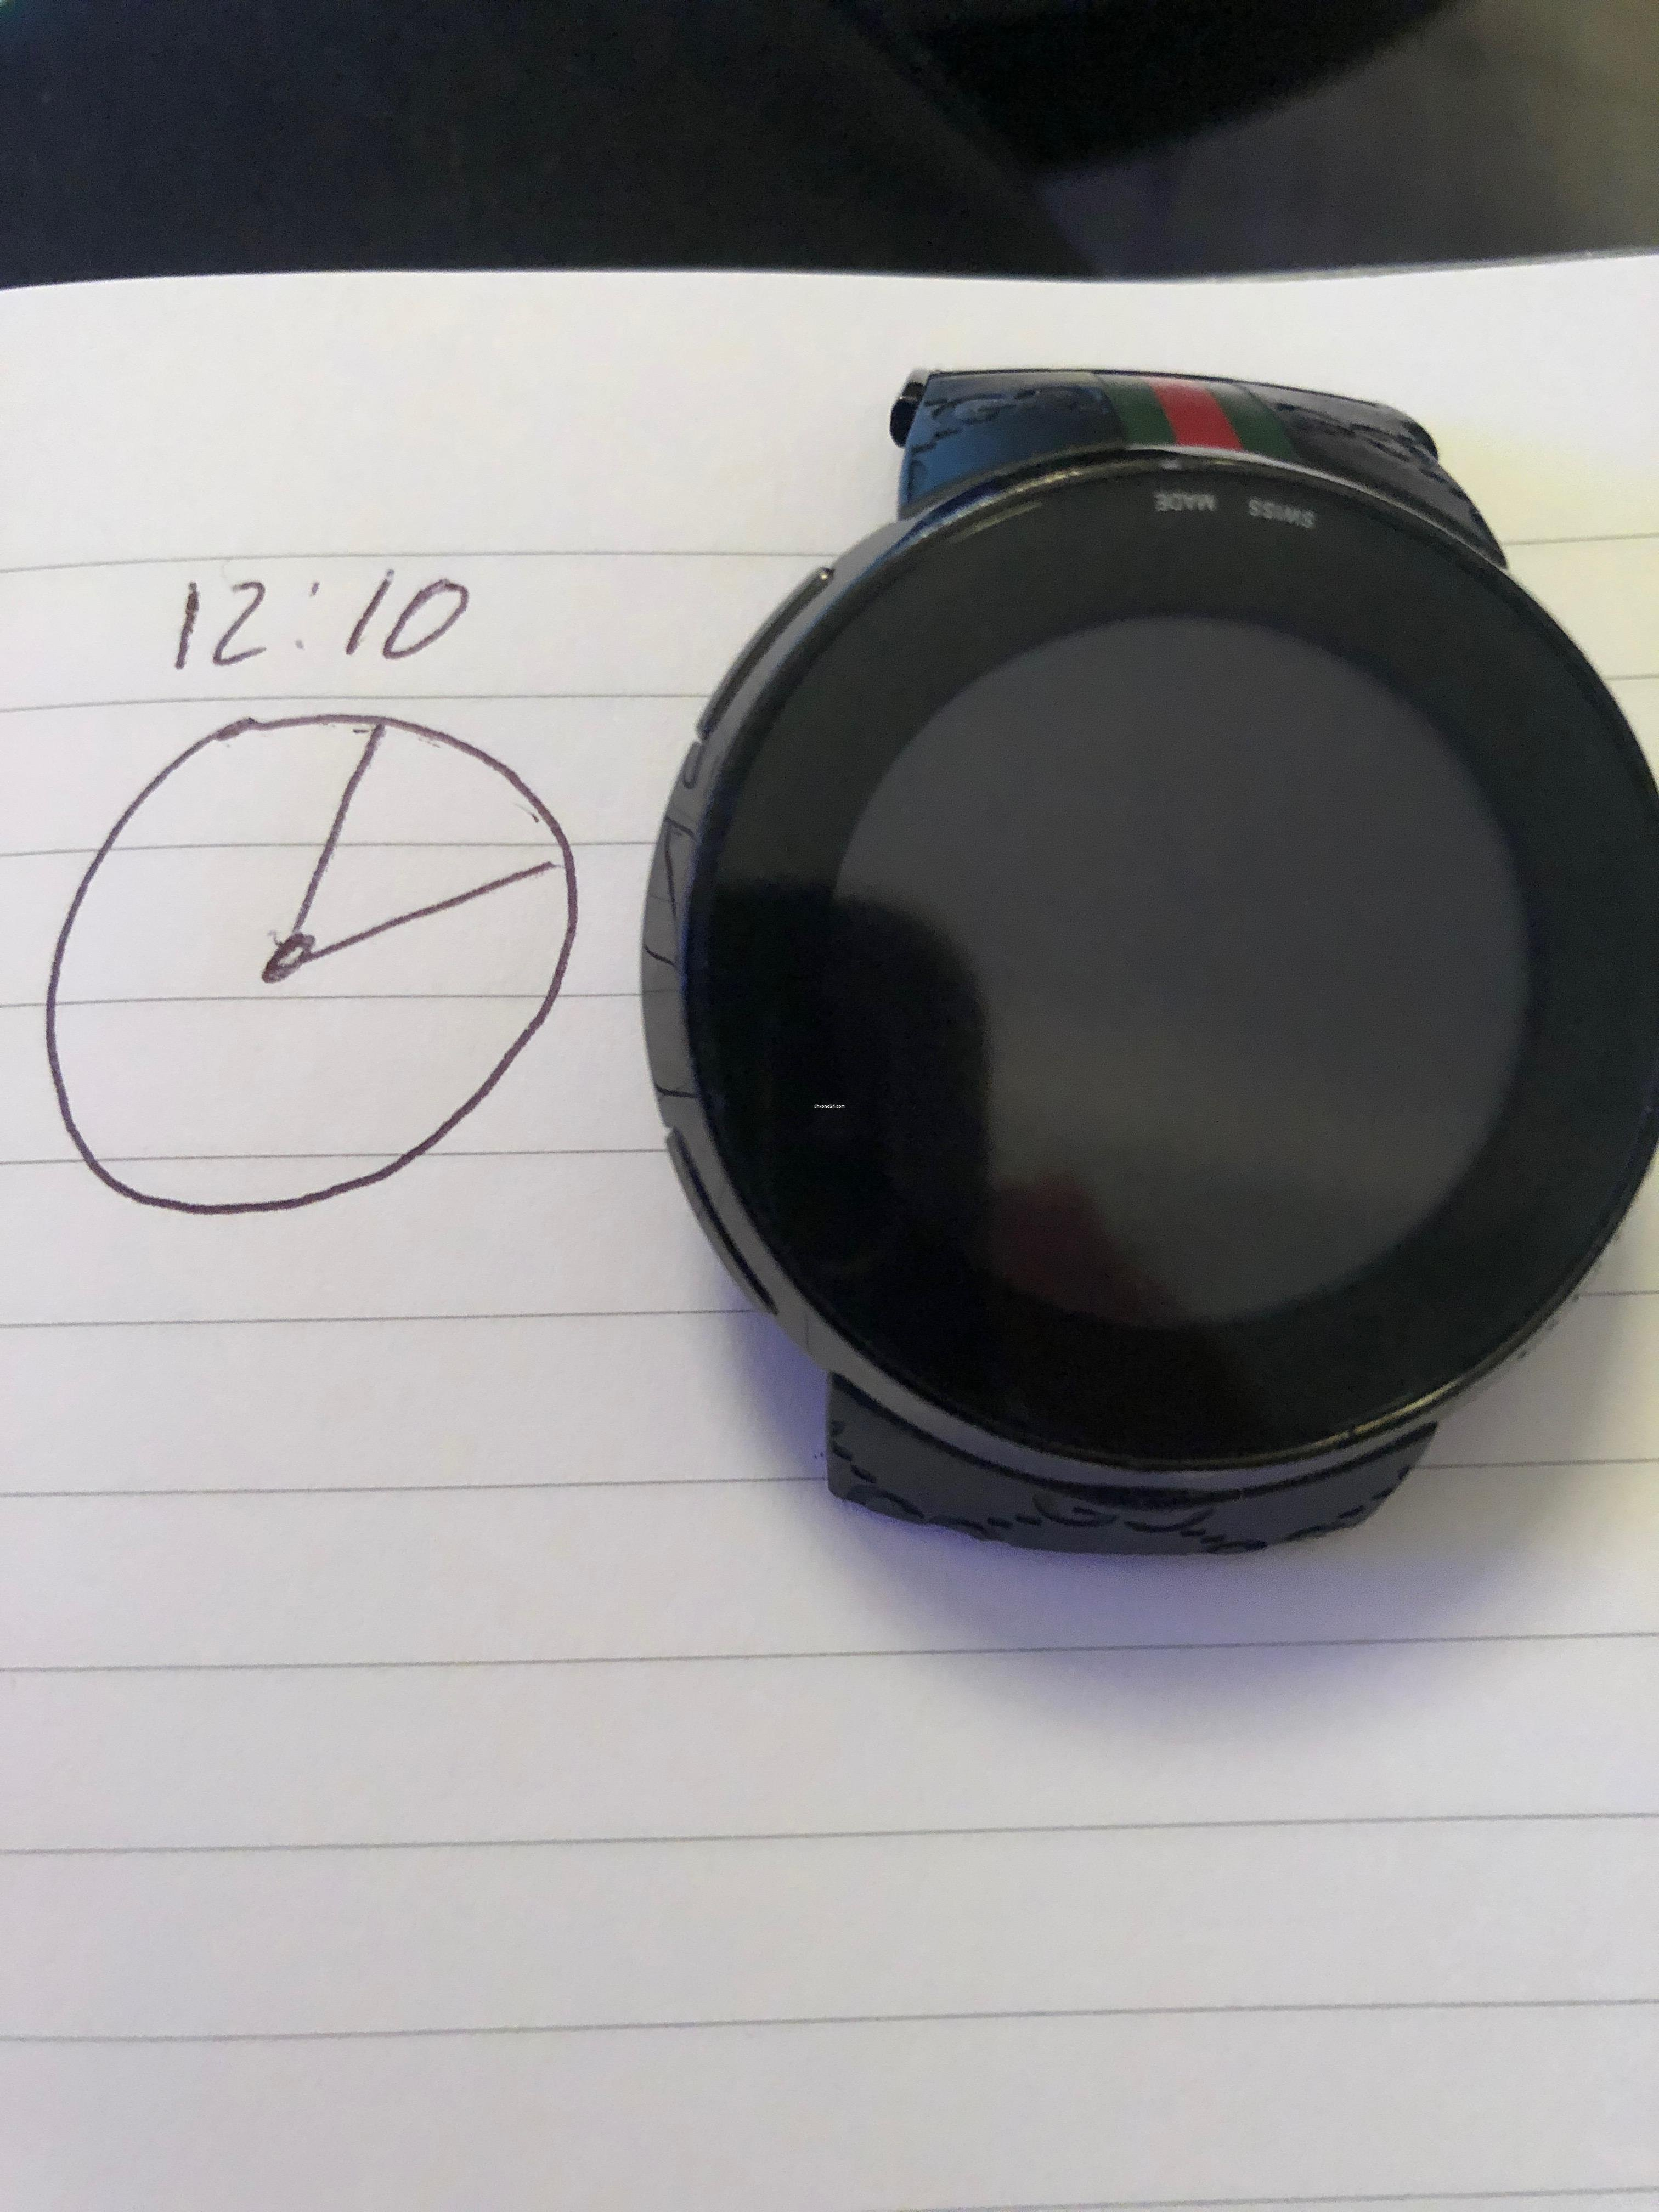 40d1079837c Gucci I-Gucci 114 Men s Digital Watch for  214 for sale from a Private  Seller on Chrono24